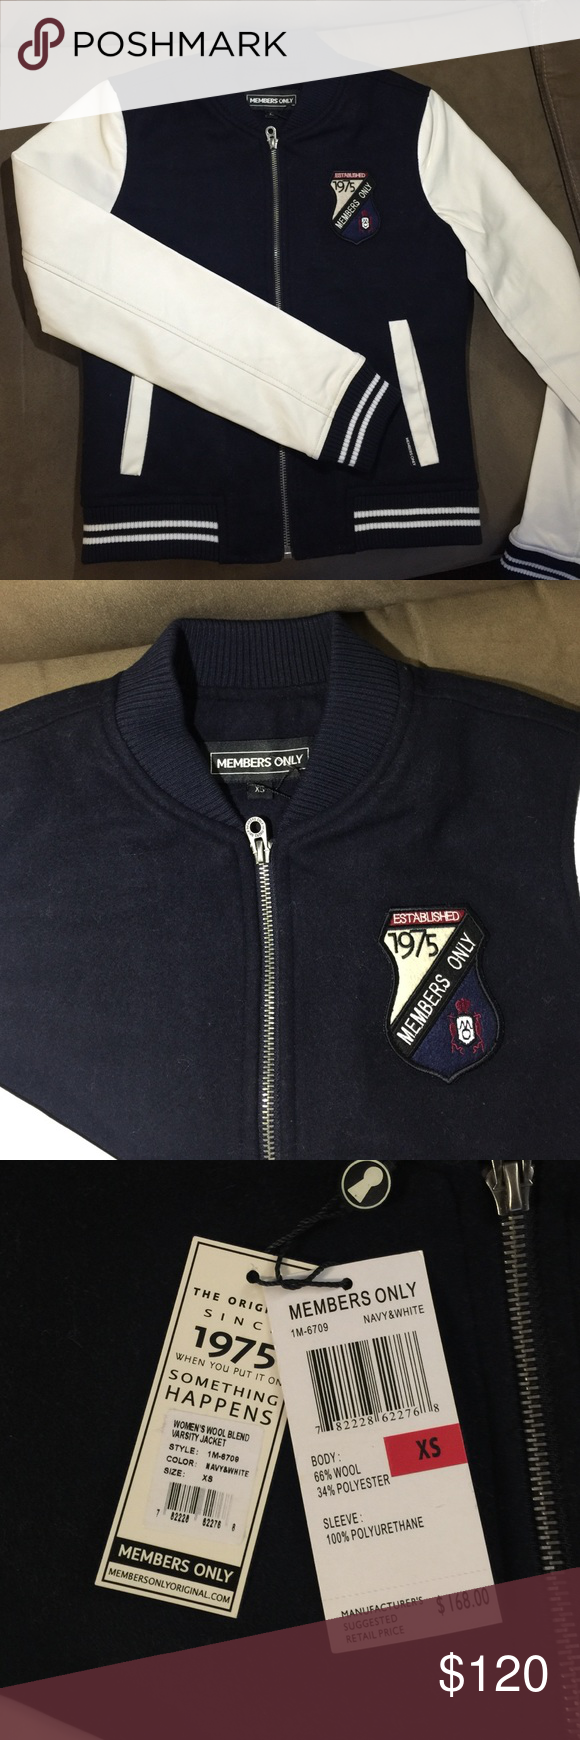 New w/tag MEMBERS ONLY old school jacket size XS New and authentic MEMBERS ONLY oldschool jacket size XS.  Very cute!!! Members Only Jackets & Coats